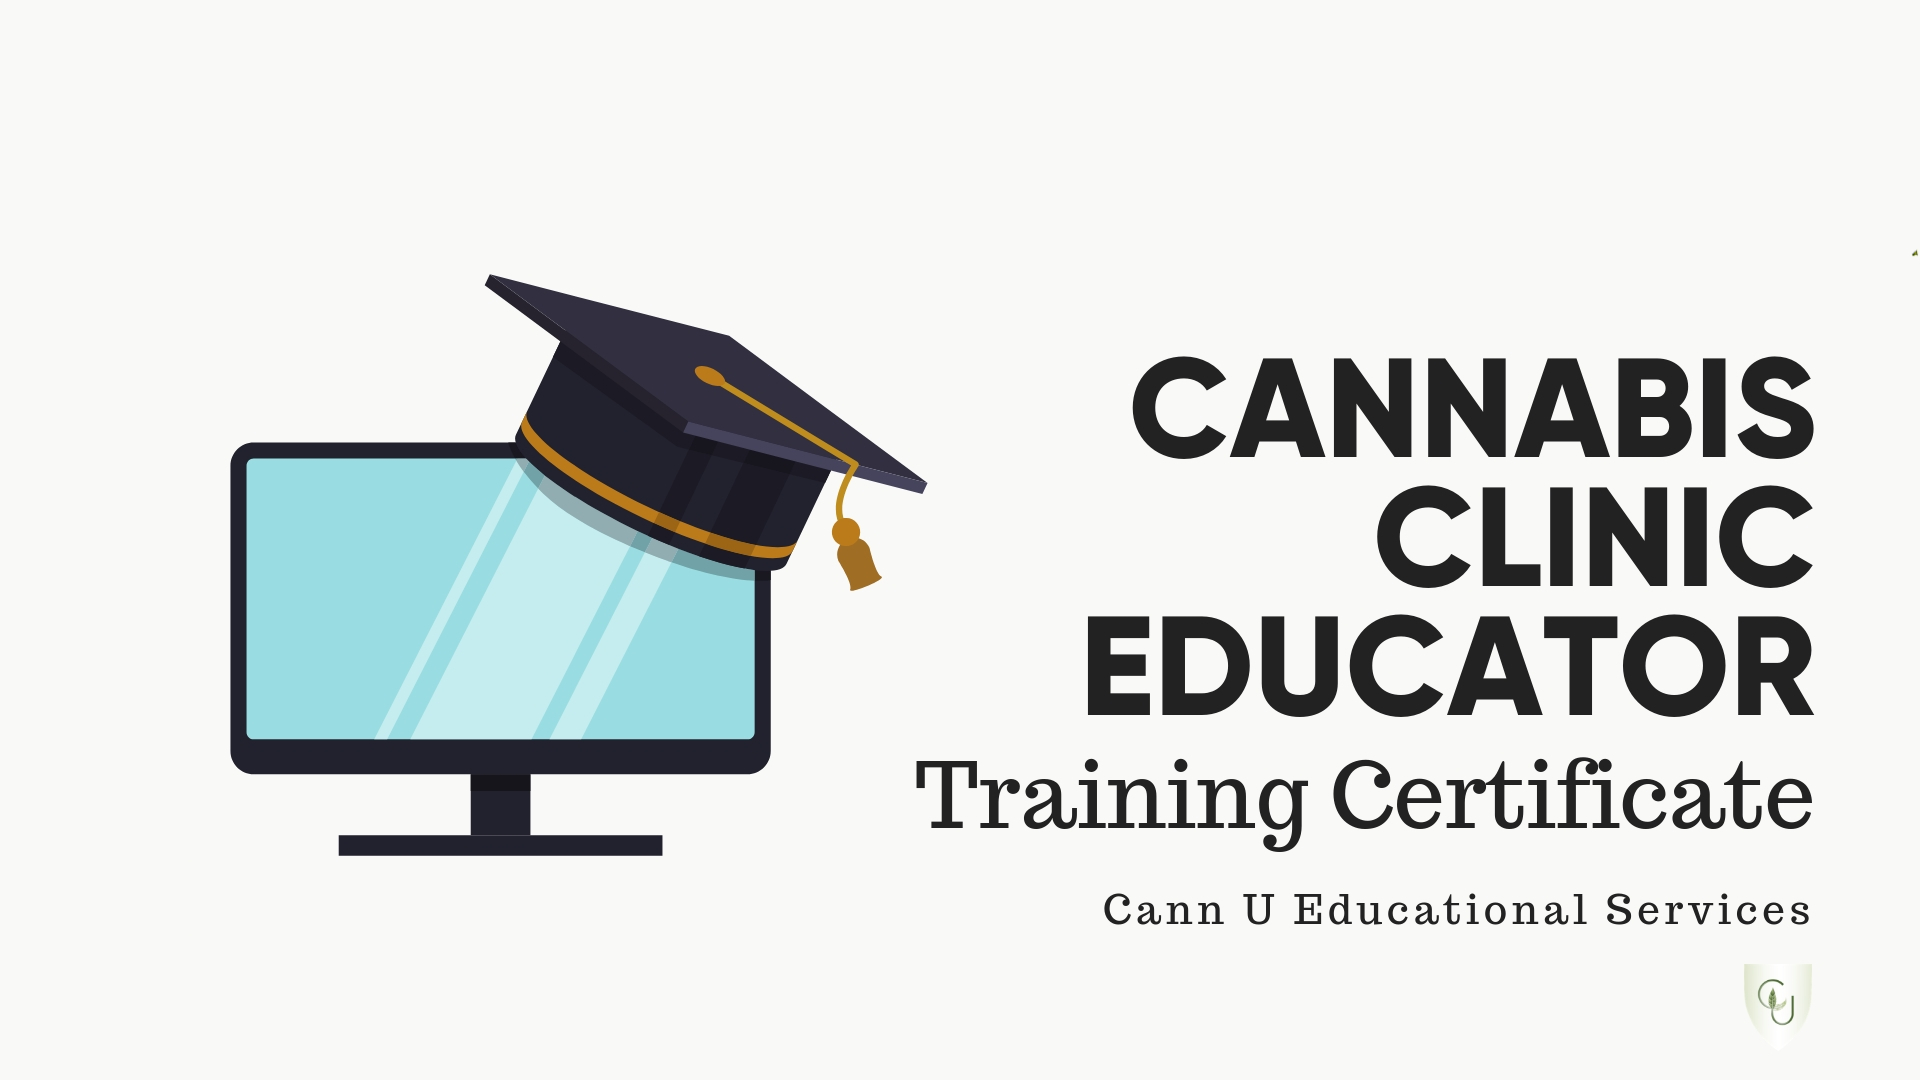 Cannabis Clinic Educator Training Certificate - $299.99 CADComprehensive cannabis education and certification to help you prepare for an exciting career as a cannabis clinic educator.18 modules and downloadable resources